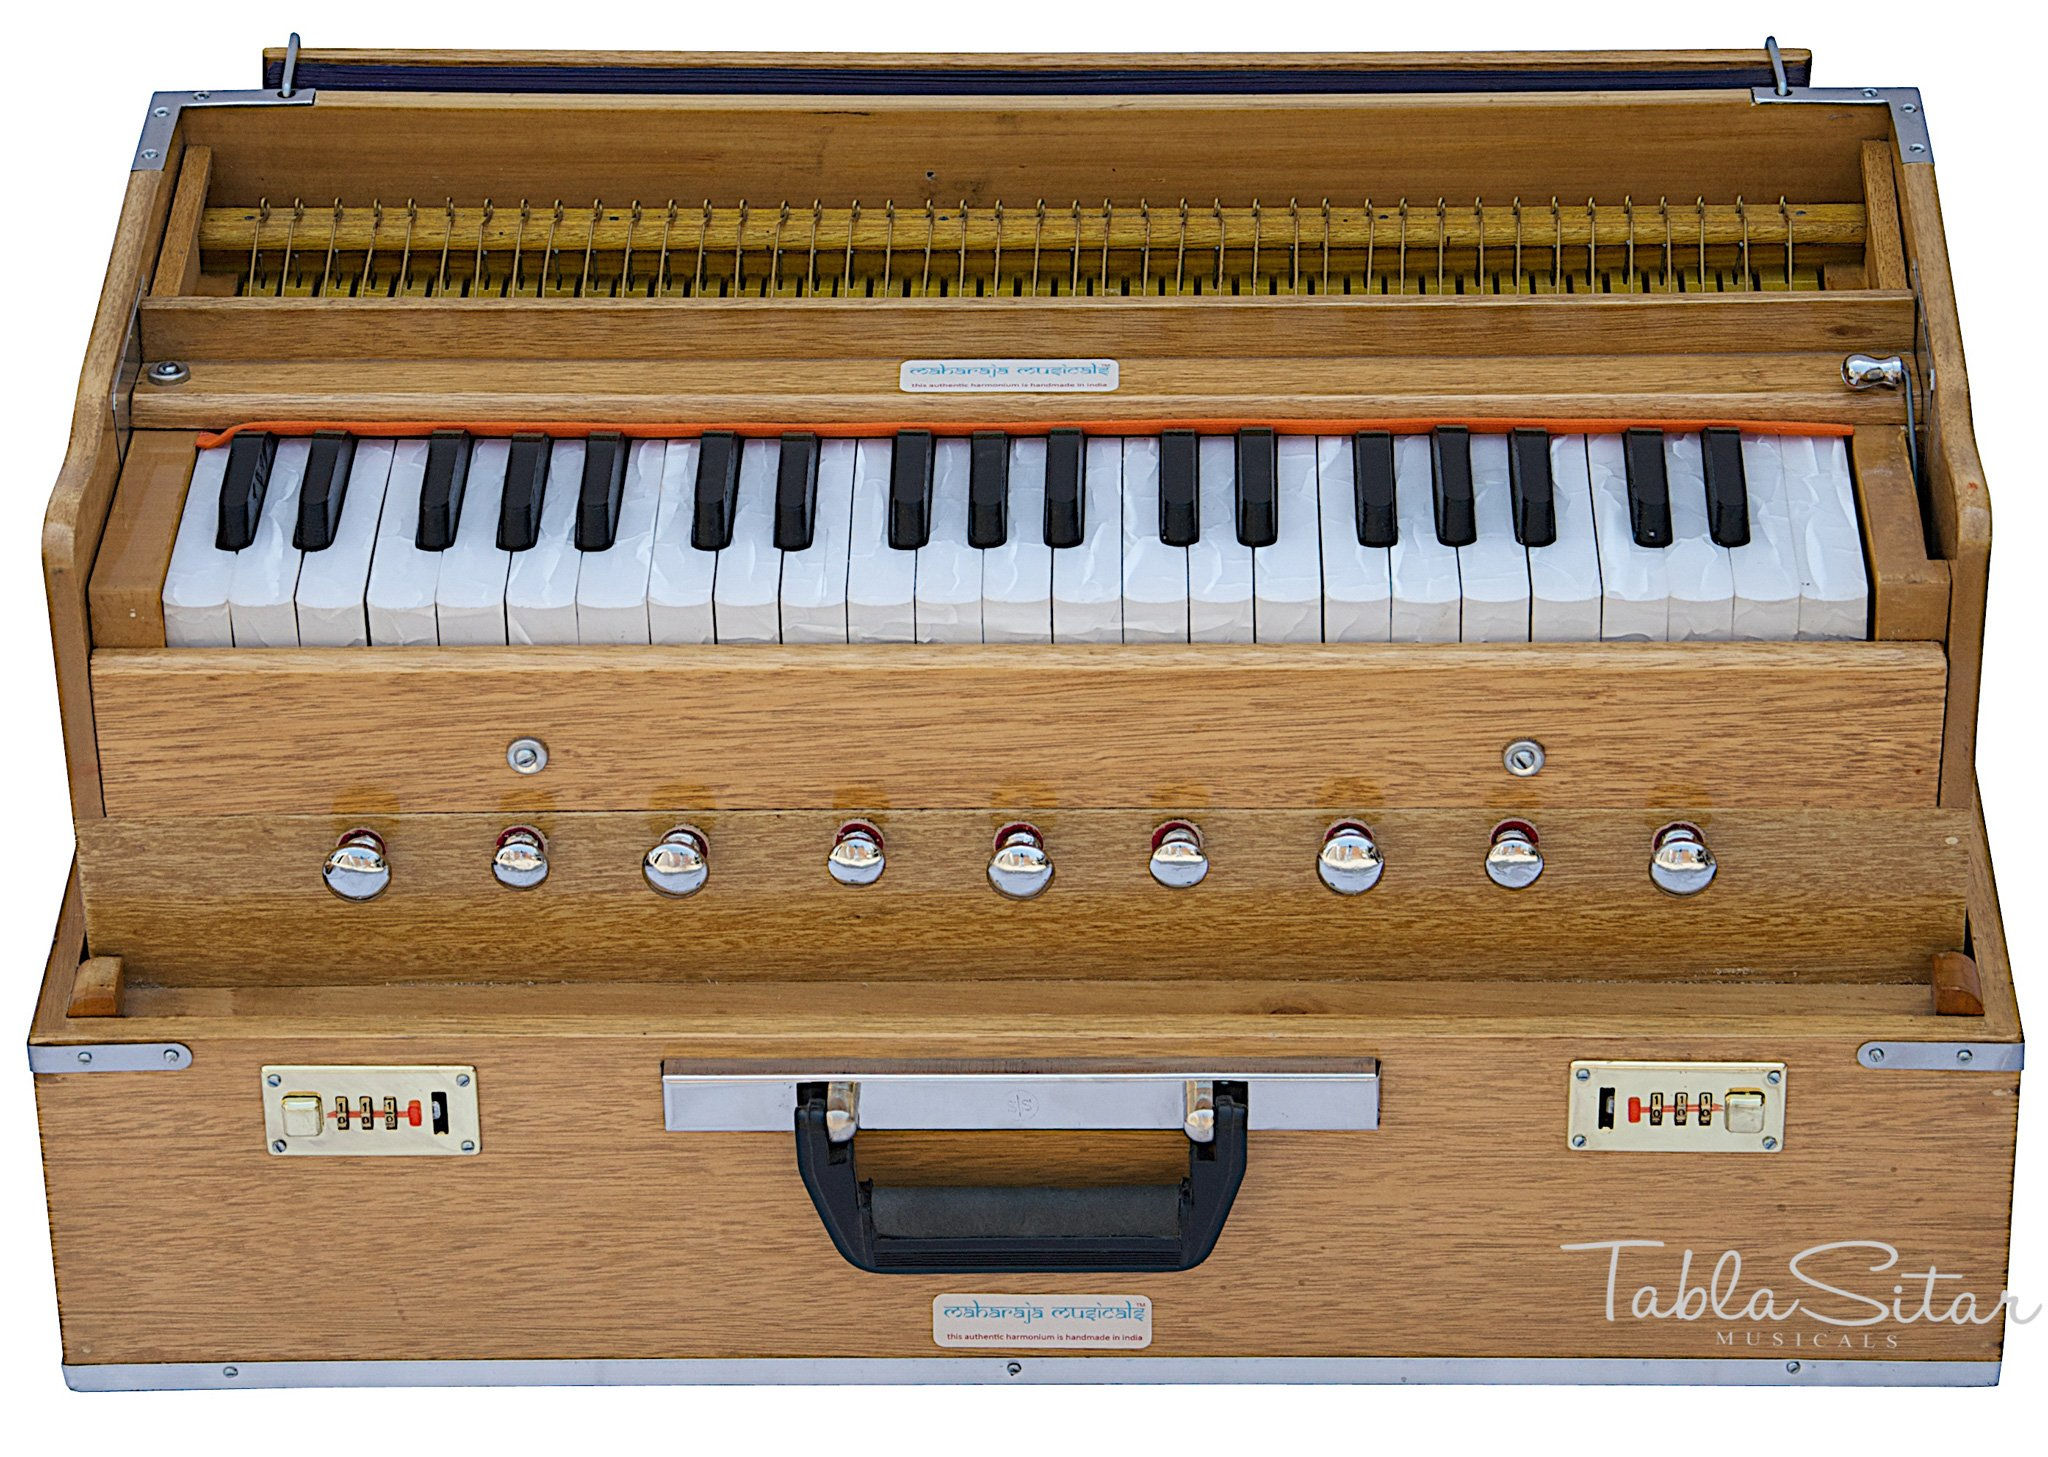 Harmonium by Maharaja Musicals, Folding, 9 Stops, In USA, Portable, Natural Color, 3 1/2 Octaves, Tuned to A440, Coupler, Book, Bag, Indian Musical Instrument (PDI-AHH) by Maharaja Musicals